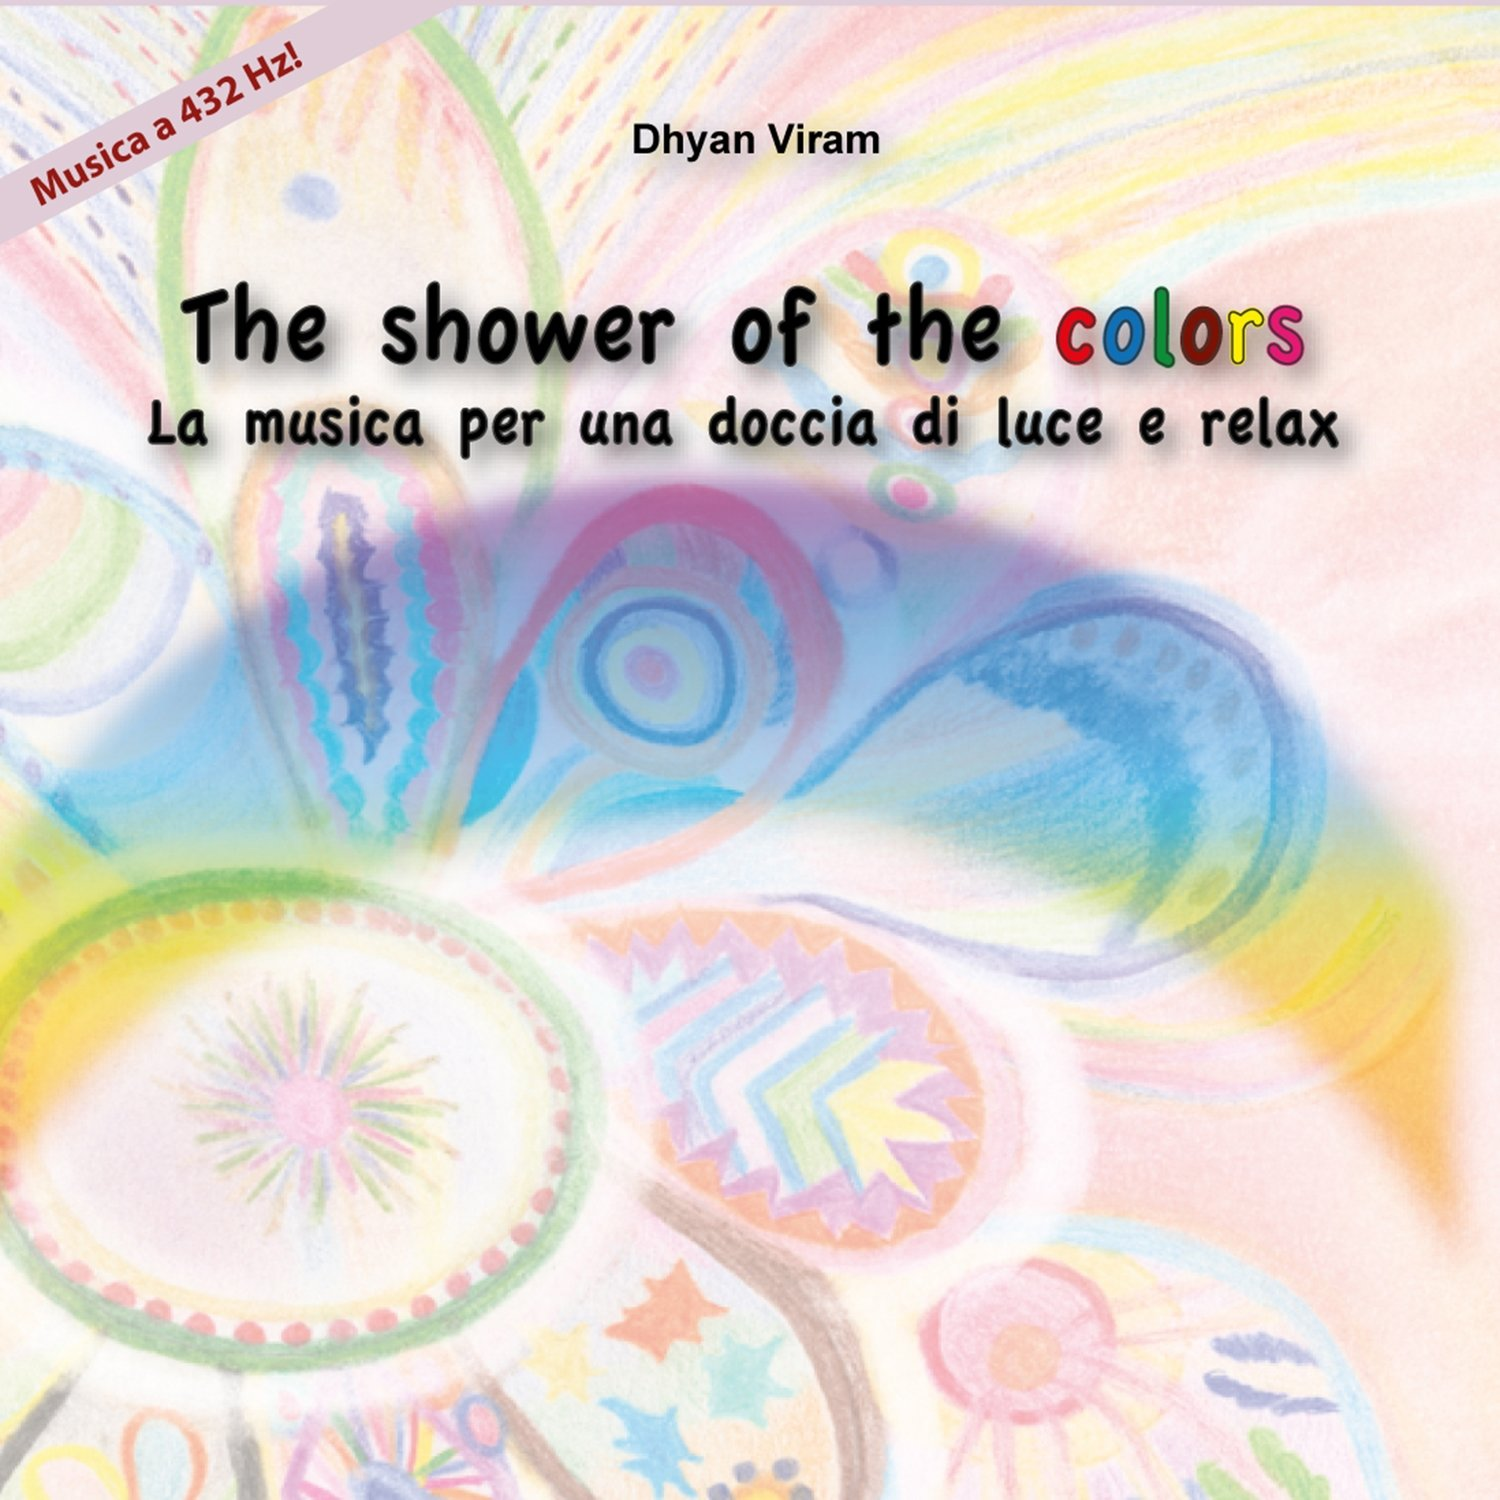 The shower of the colors